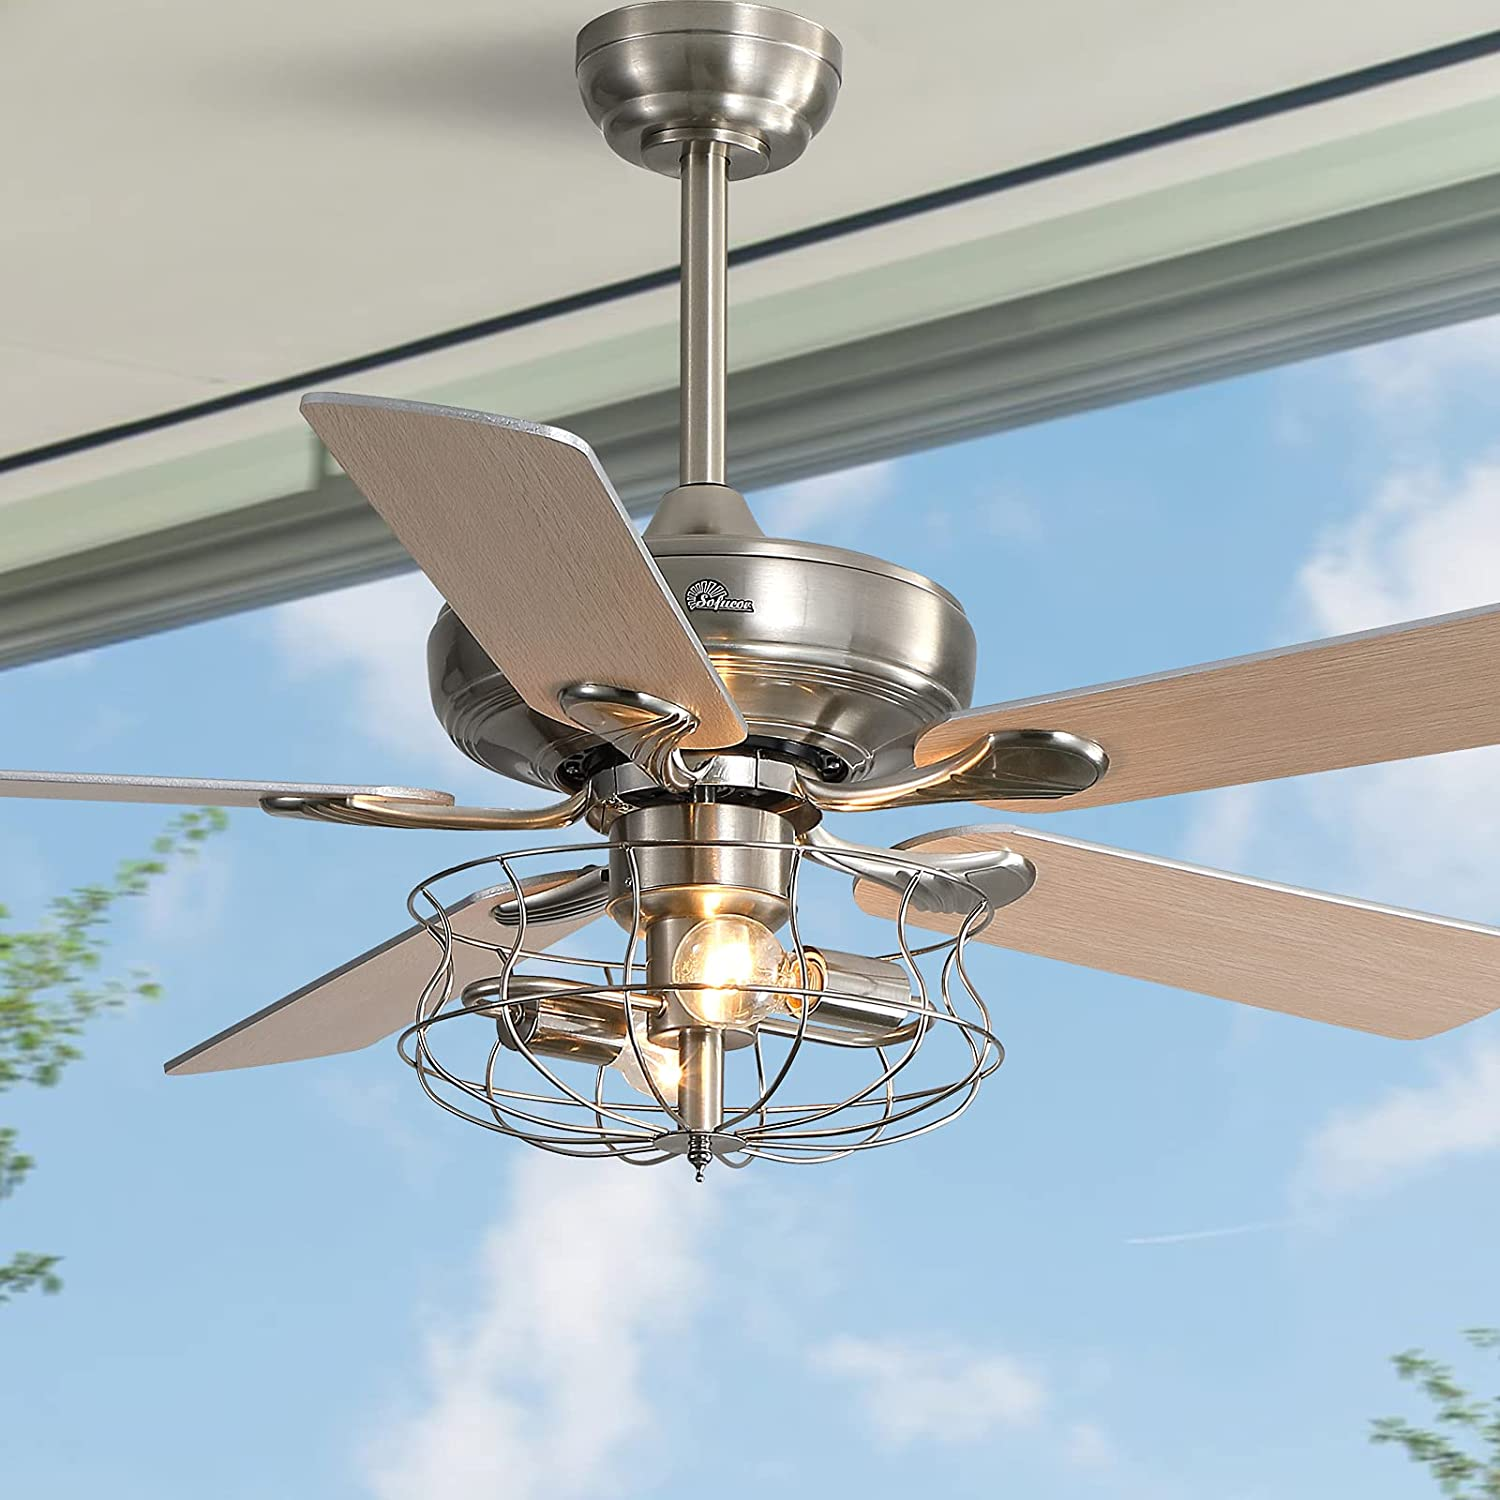 Buy Industrial Cage Ceiling Fan With Lights And Remote Ac Motor Sofucor 52 Inch Brushed Nickel Indoor Ceiling Fan With Iron Lampshade Flush Mount 3 Speed Noiseless Reversible Motor Silver Online In Kazakhstan B08sq7krfv